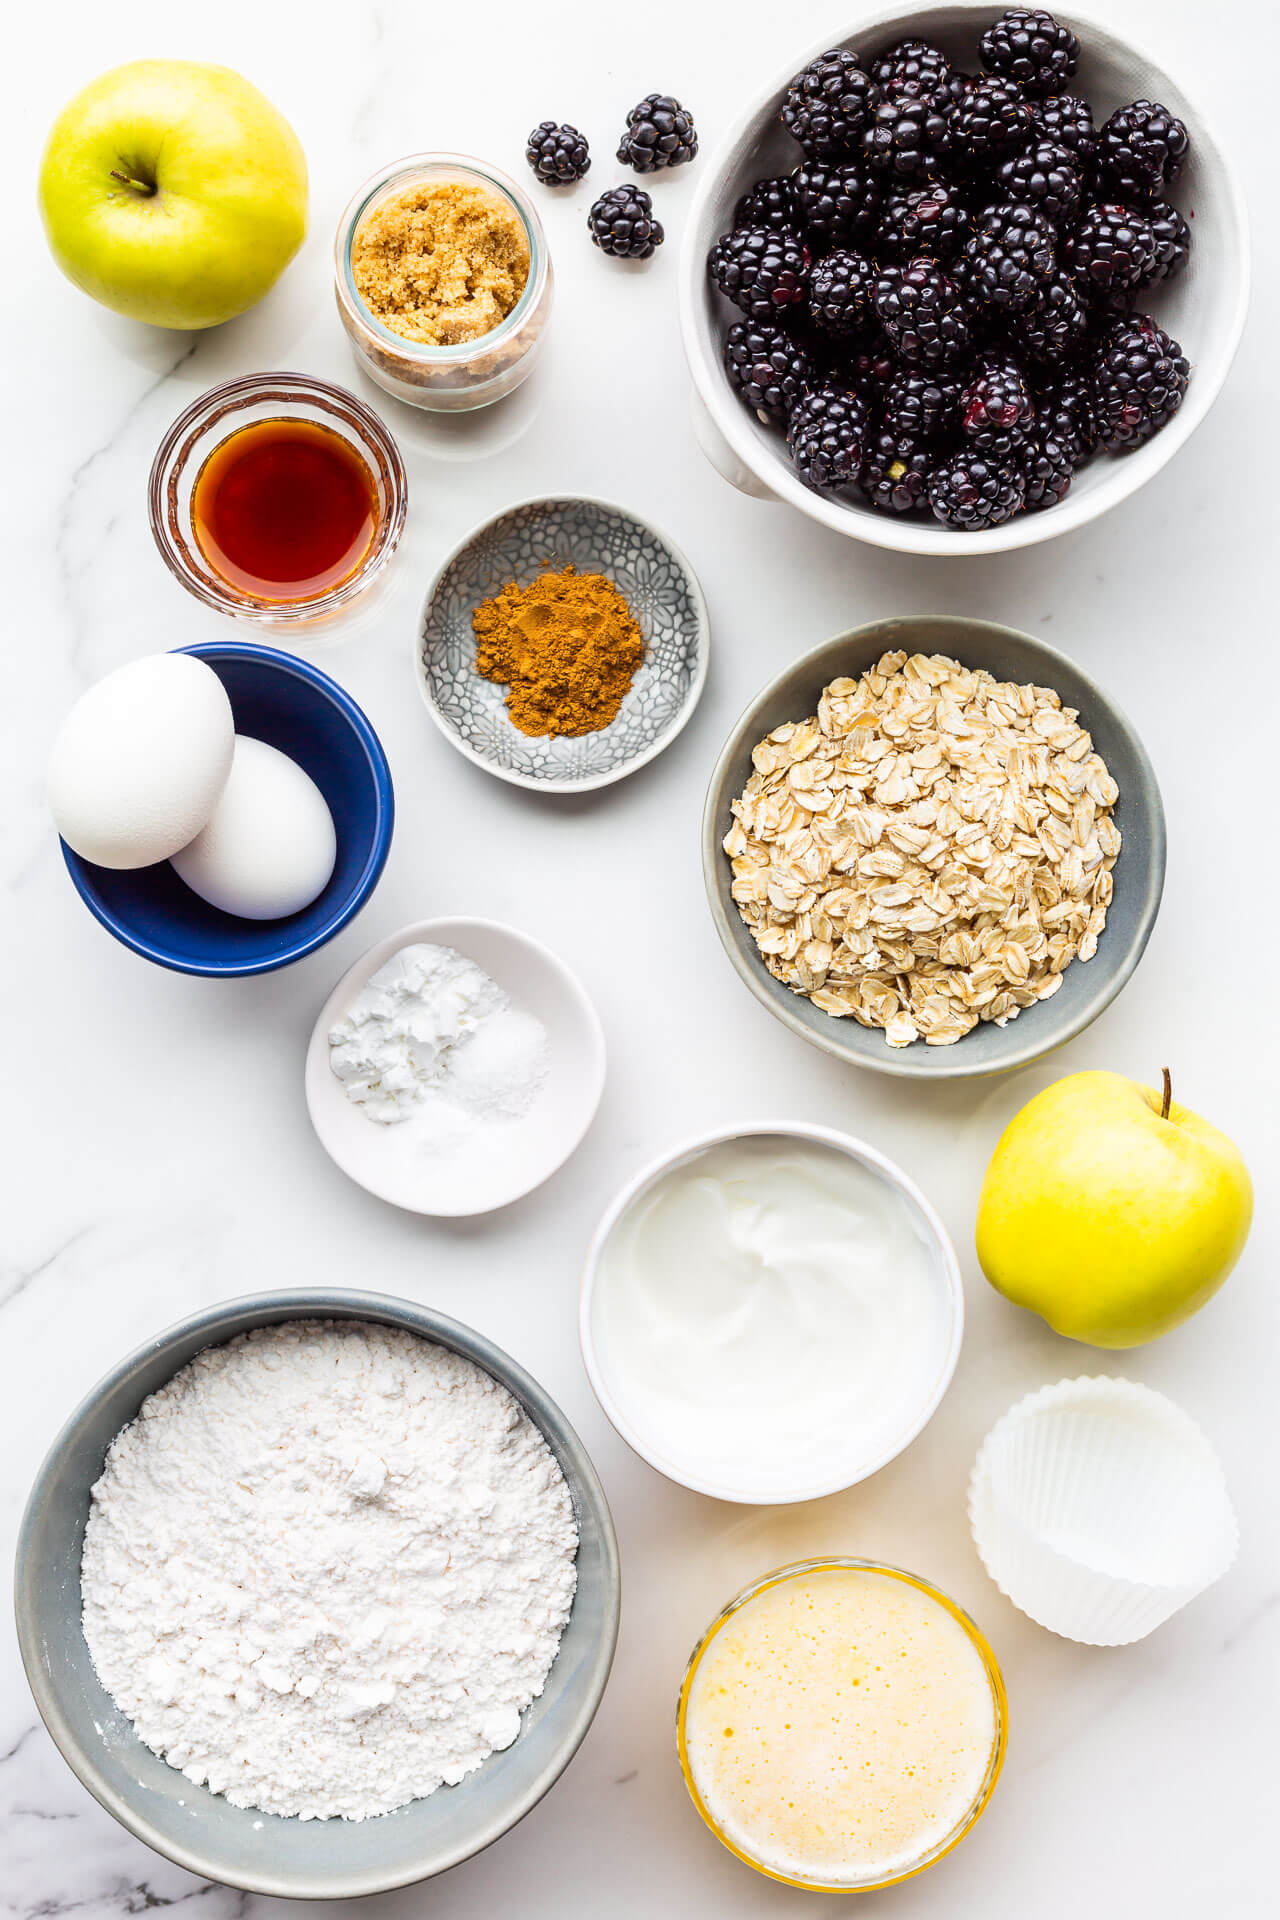 Ingredients to make apple blackberry muffins measured out and ready to be mixed, including fresh blackberries, apples, brown sugar, vanilla extract, cinnamon, 2 eggs, baking powder, baking soda, and salt, as well as oats, yogurt, melted butter, flour, and silicone liners for baking